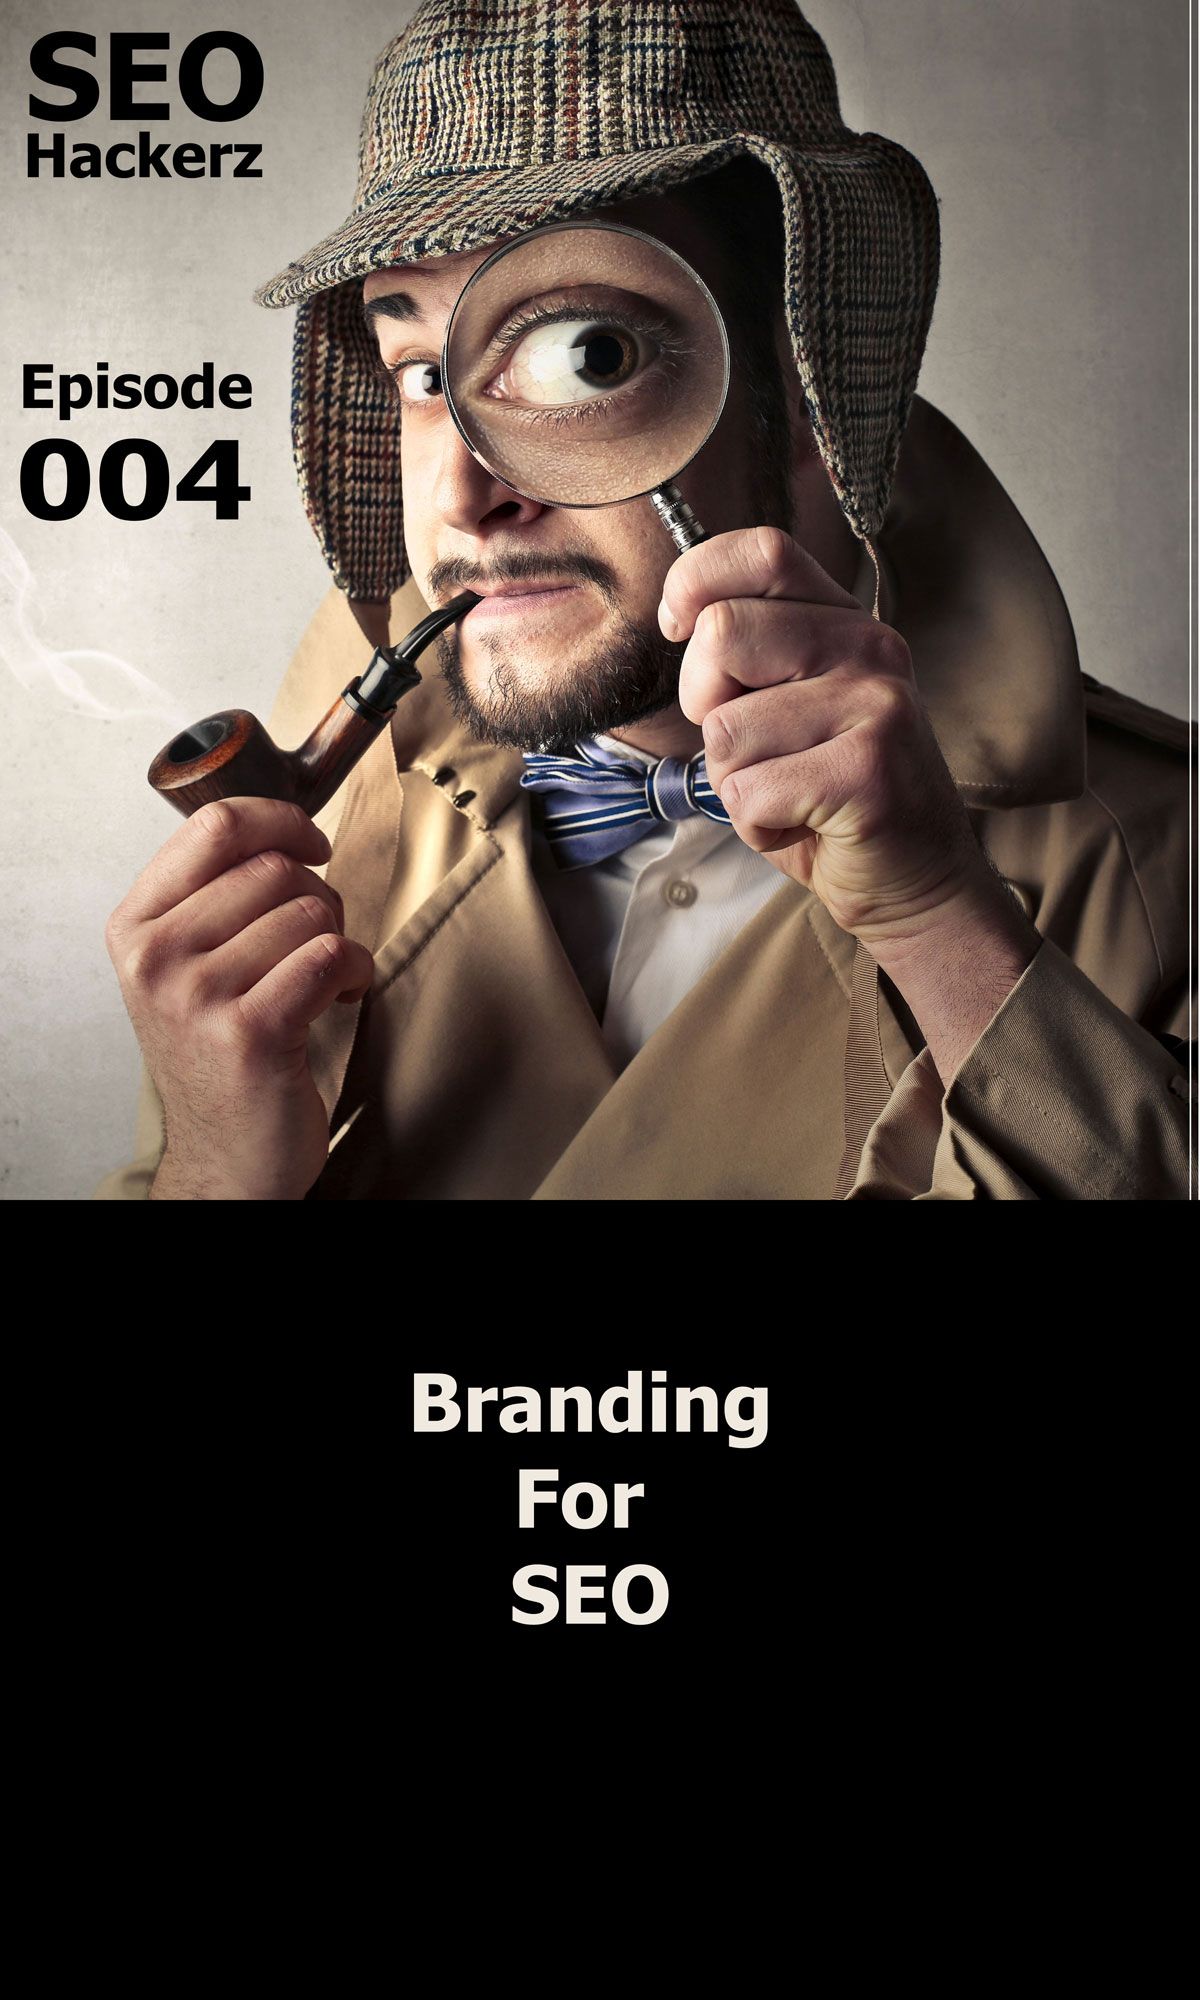 Episode 004 - Branding for SEO - [Get Some Backlinks]